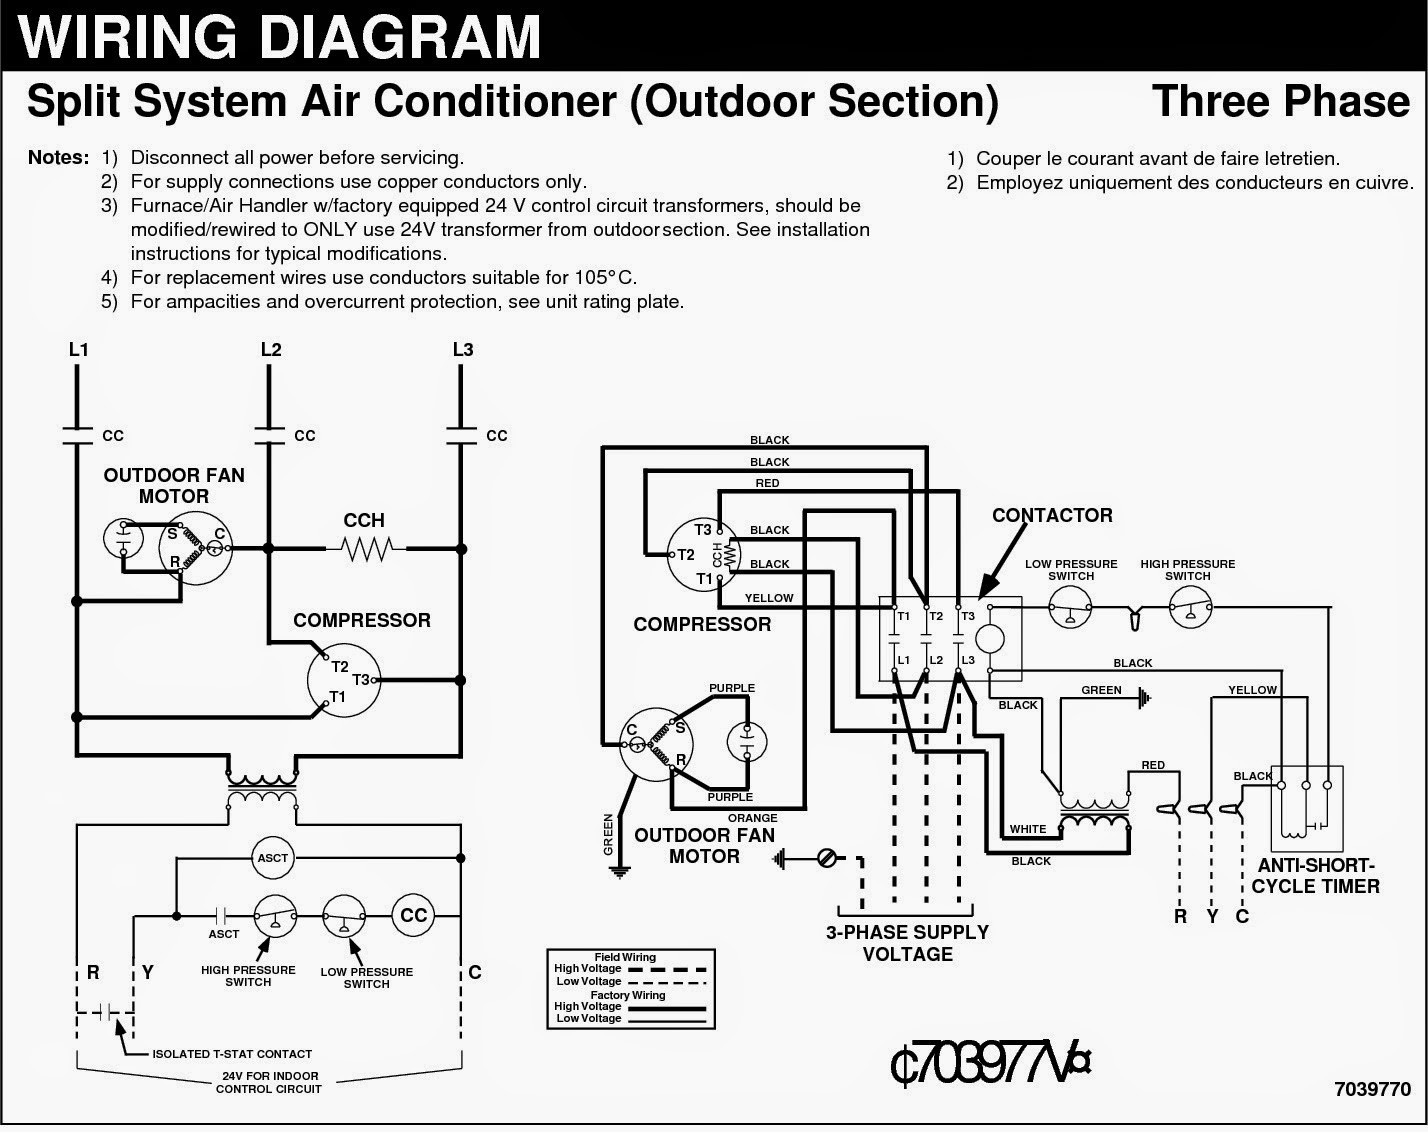 single phase ac wiring wiring diagram third level general electric residential panels 240 schematic wiring diagram [ 1428 x 1132 Pixel ]